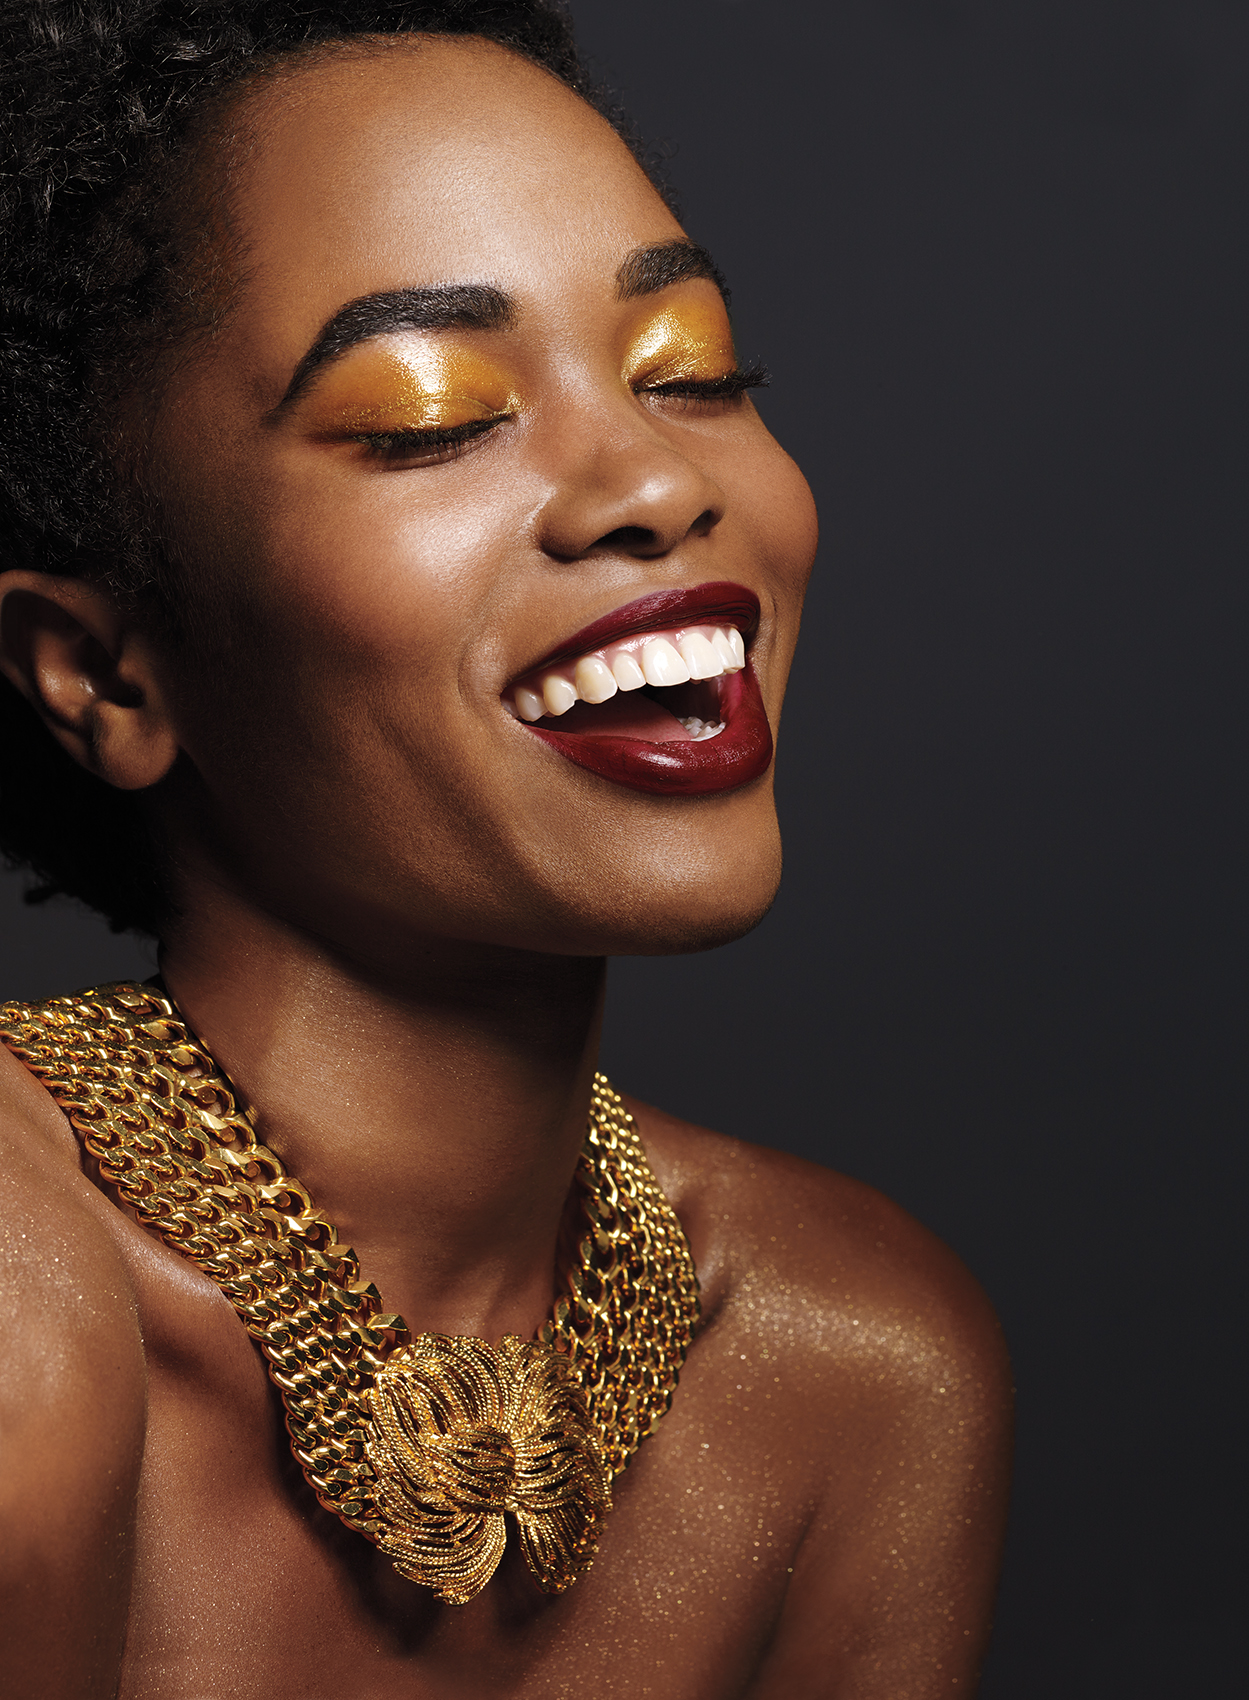 Woman with gold eyeshadow and gold necklace